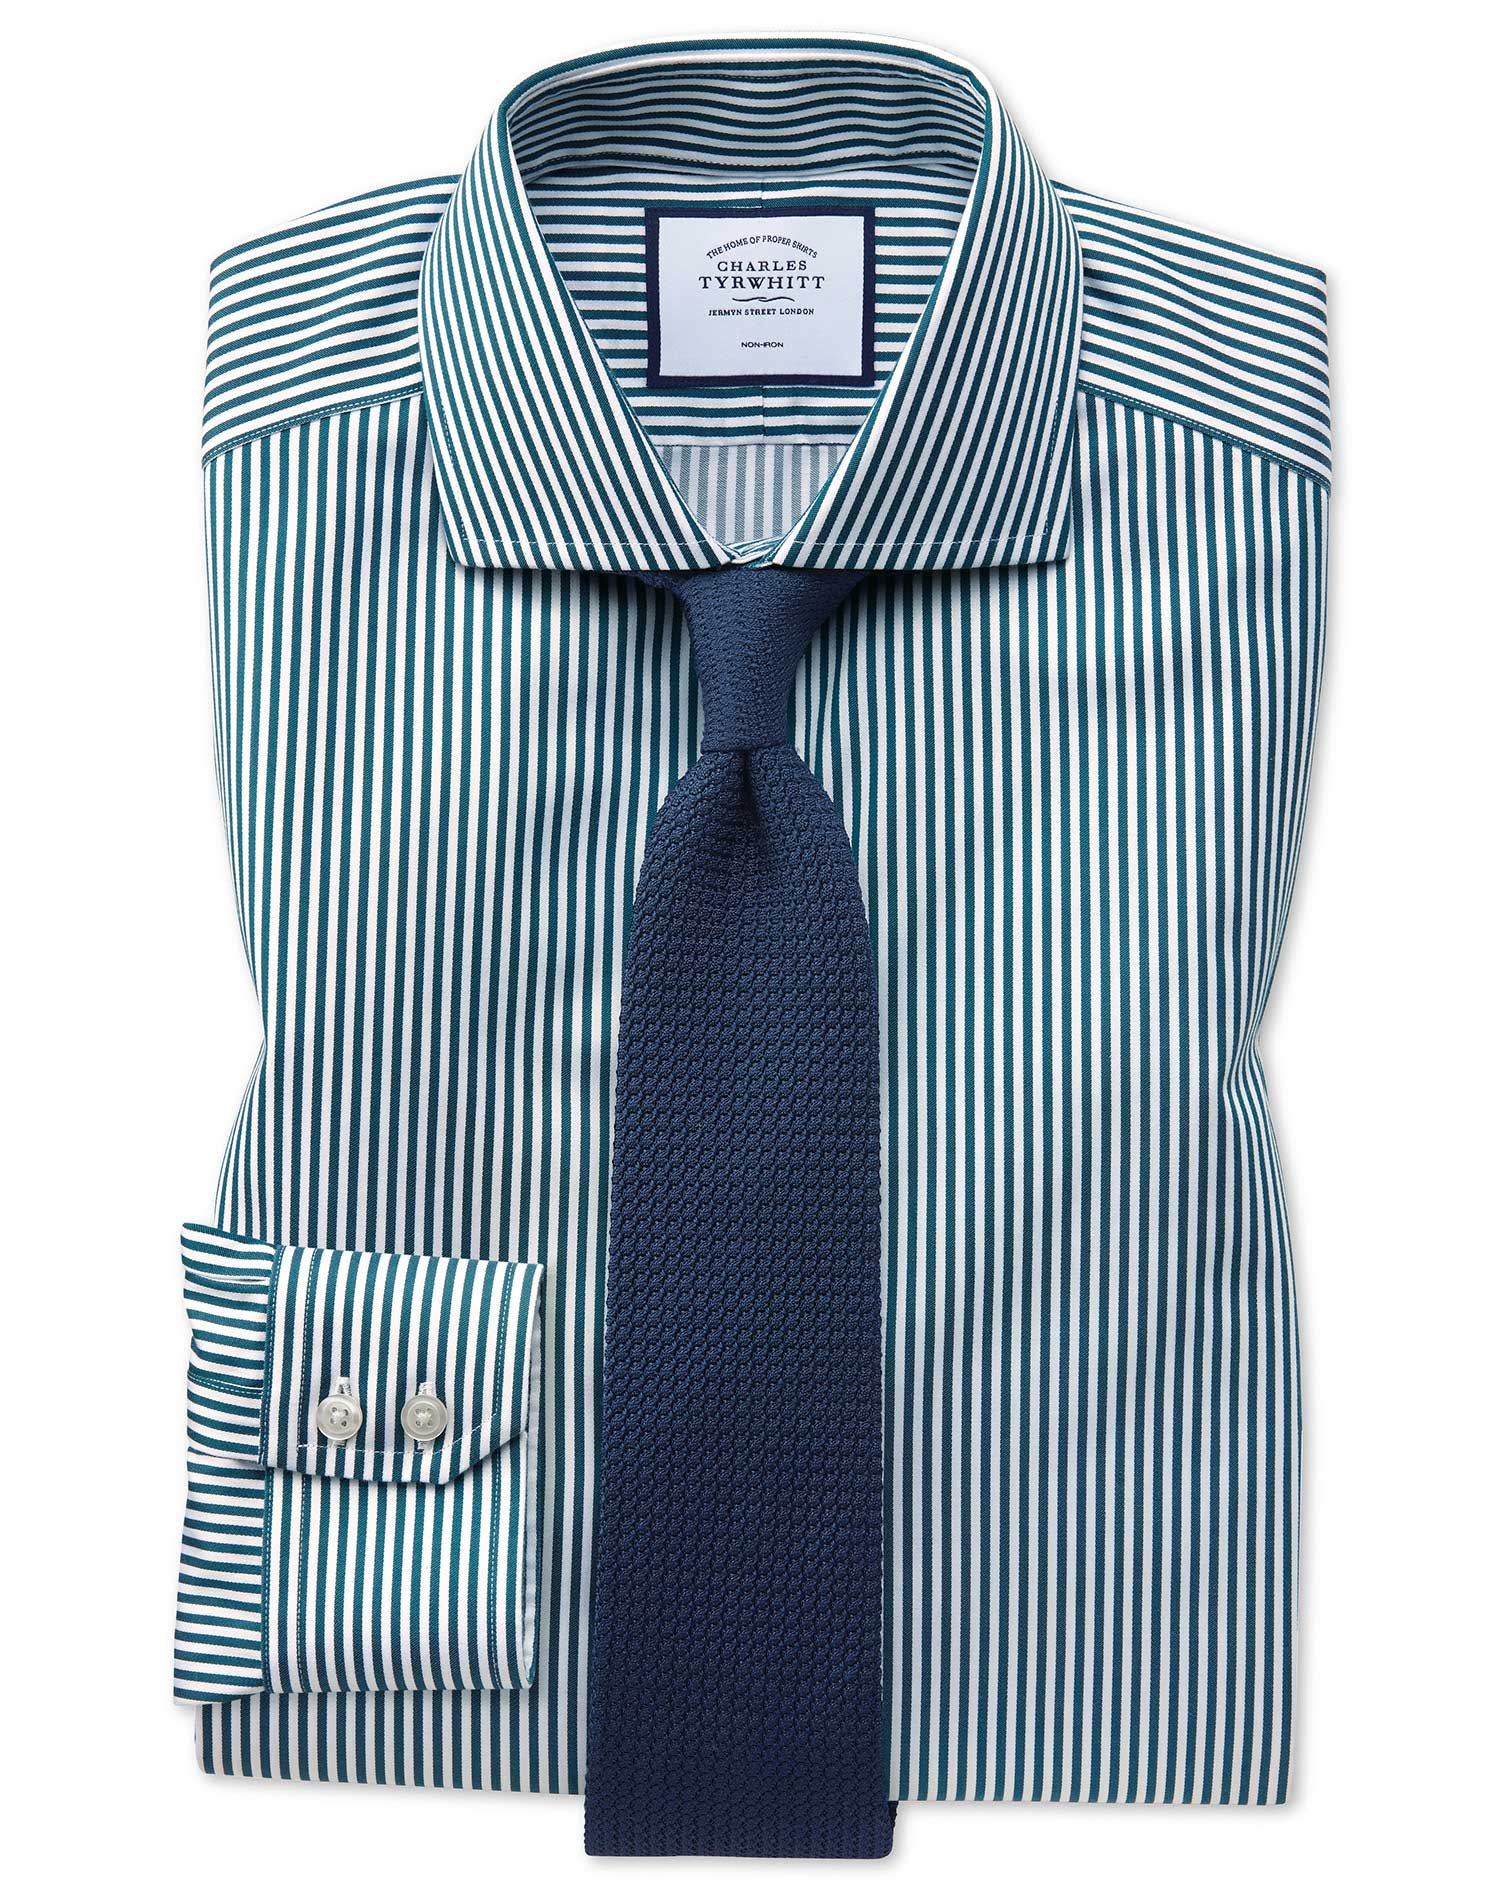 Extra Slim Fit Non-Iron Cutaway Collar Teal Twill Stripe Cotton Formal Shirt Single Cuff Size 14.5/3